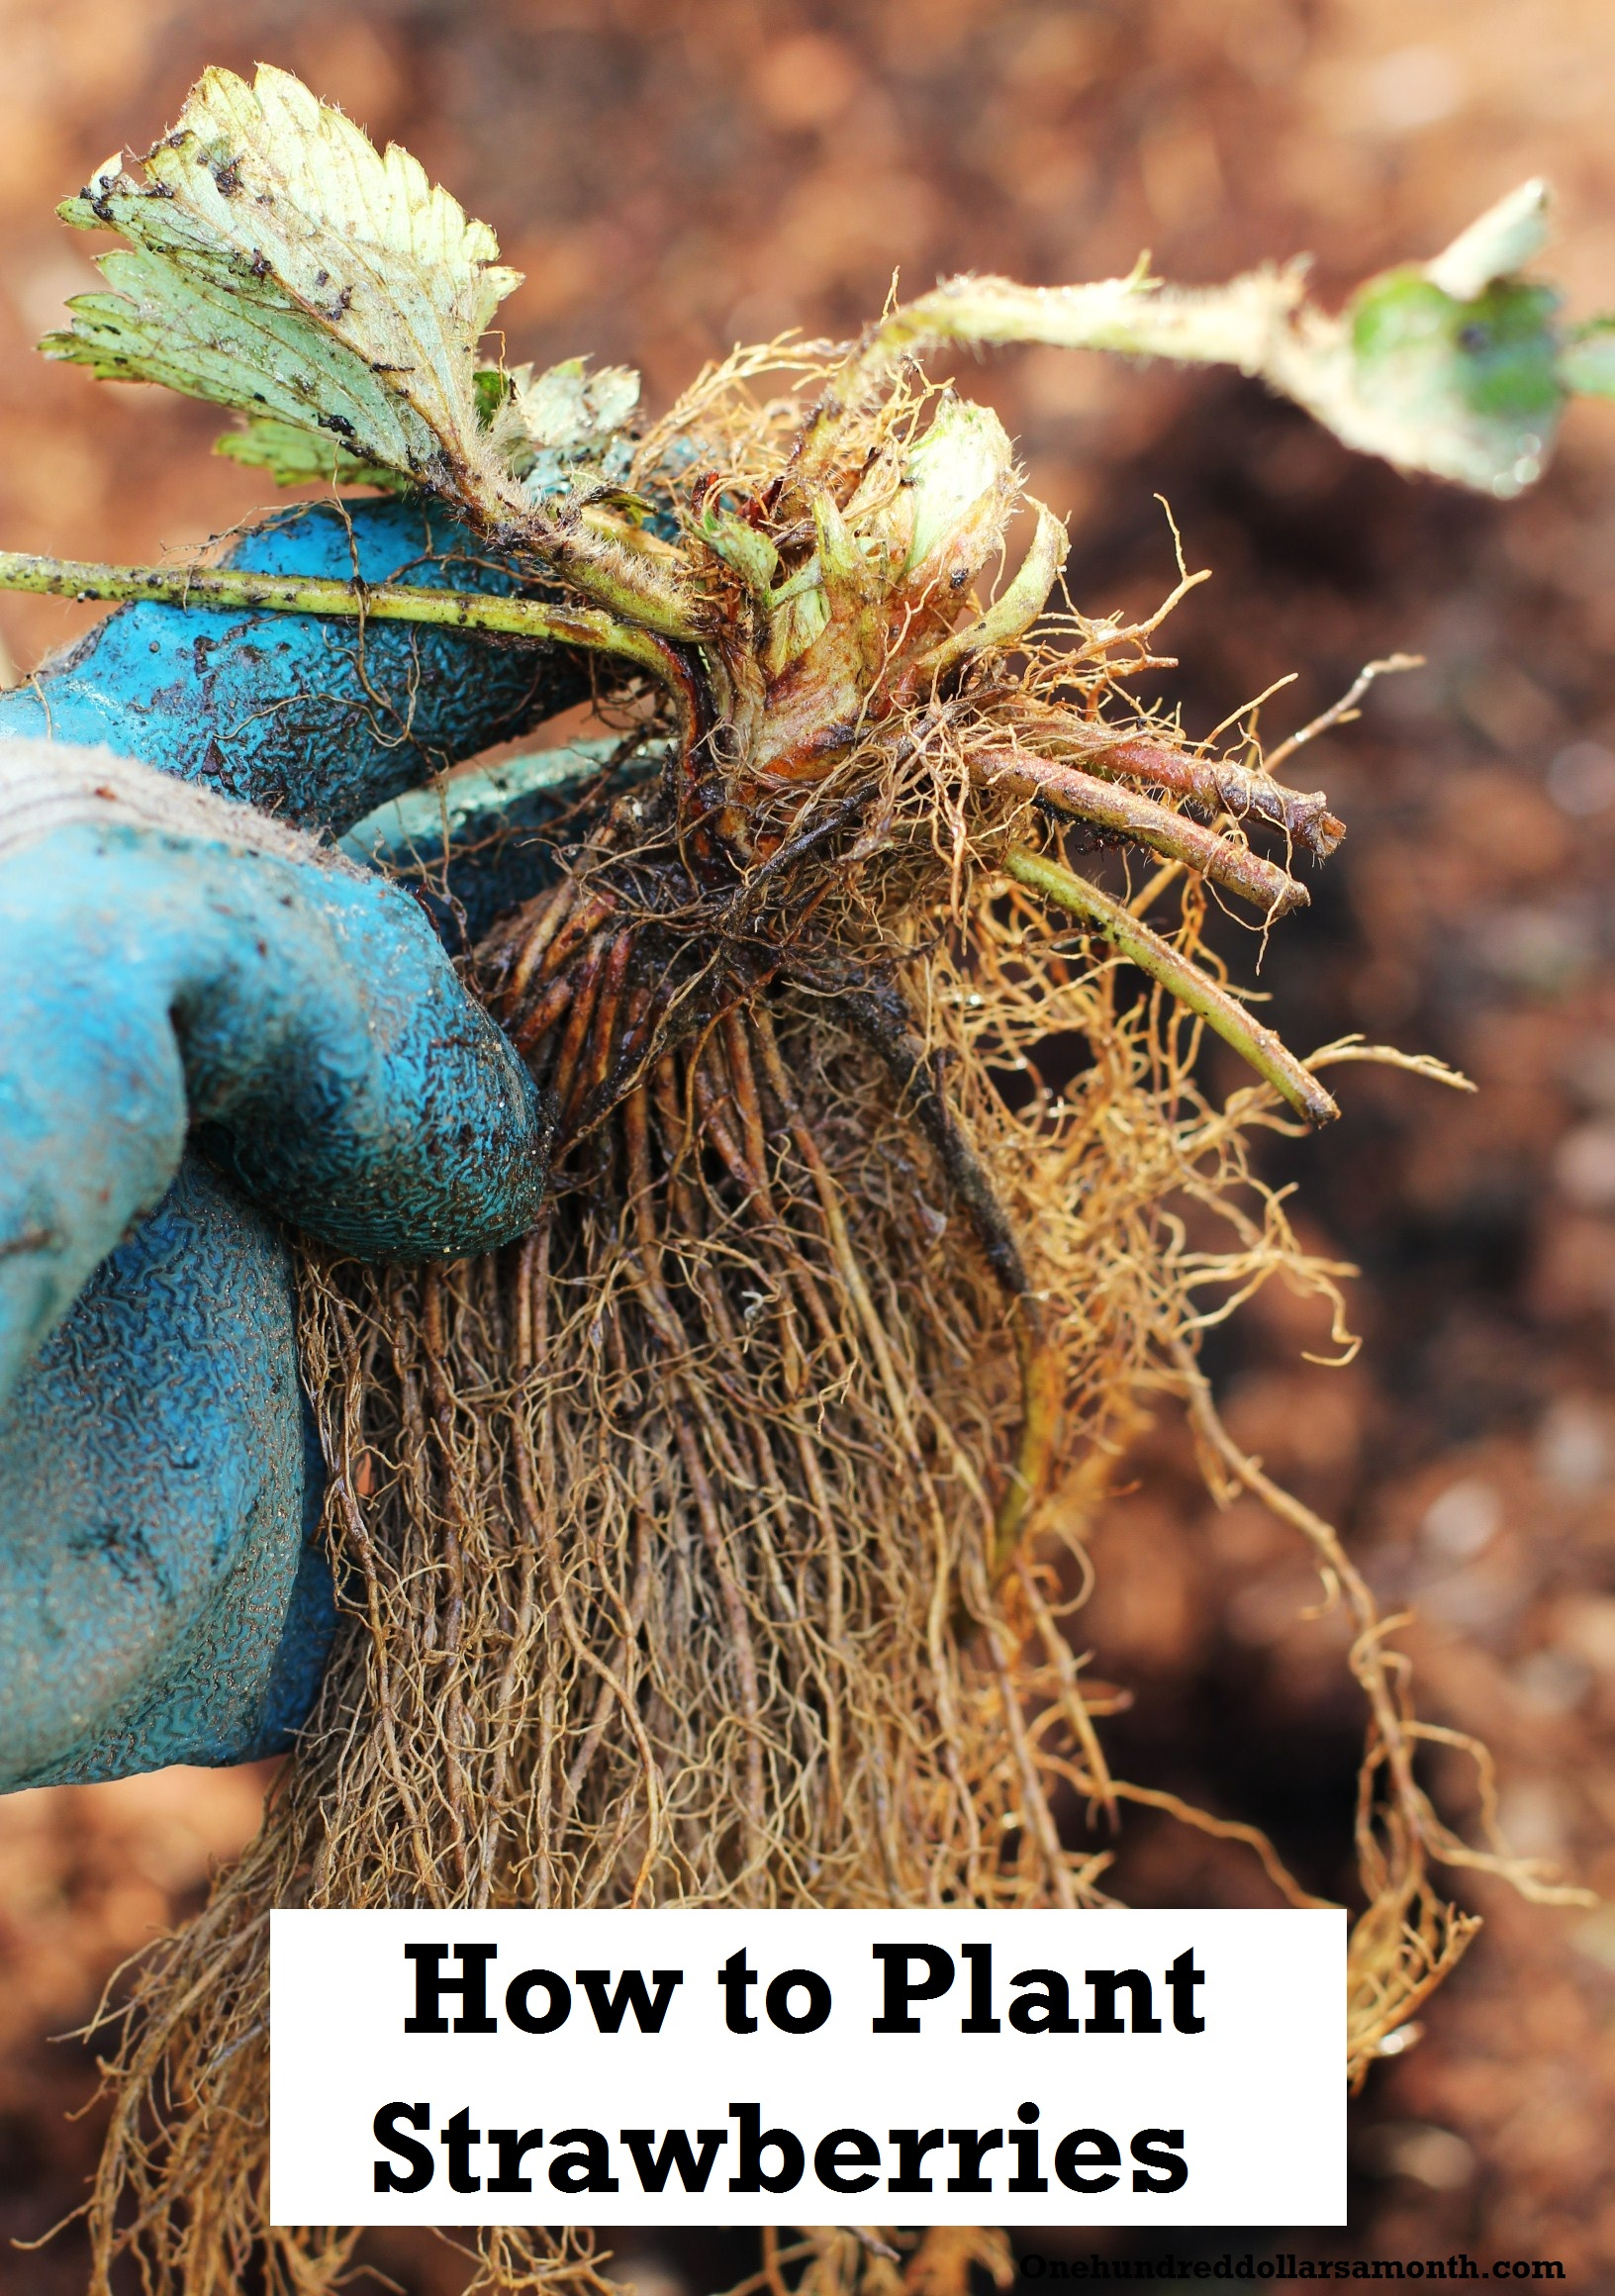 How to Grow Your Own Food: How to Plant Strawberries